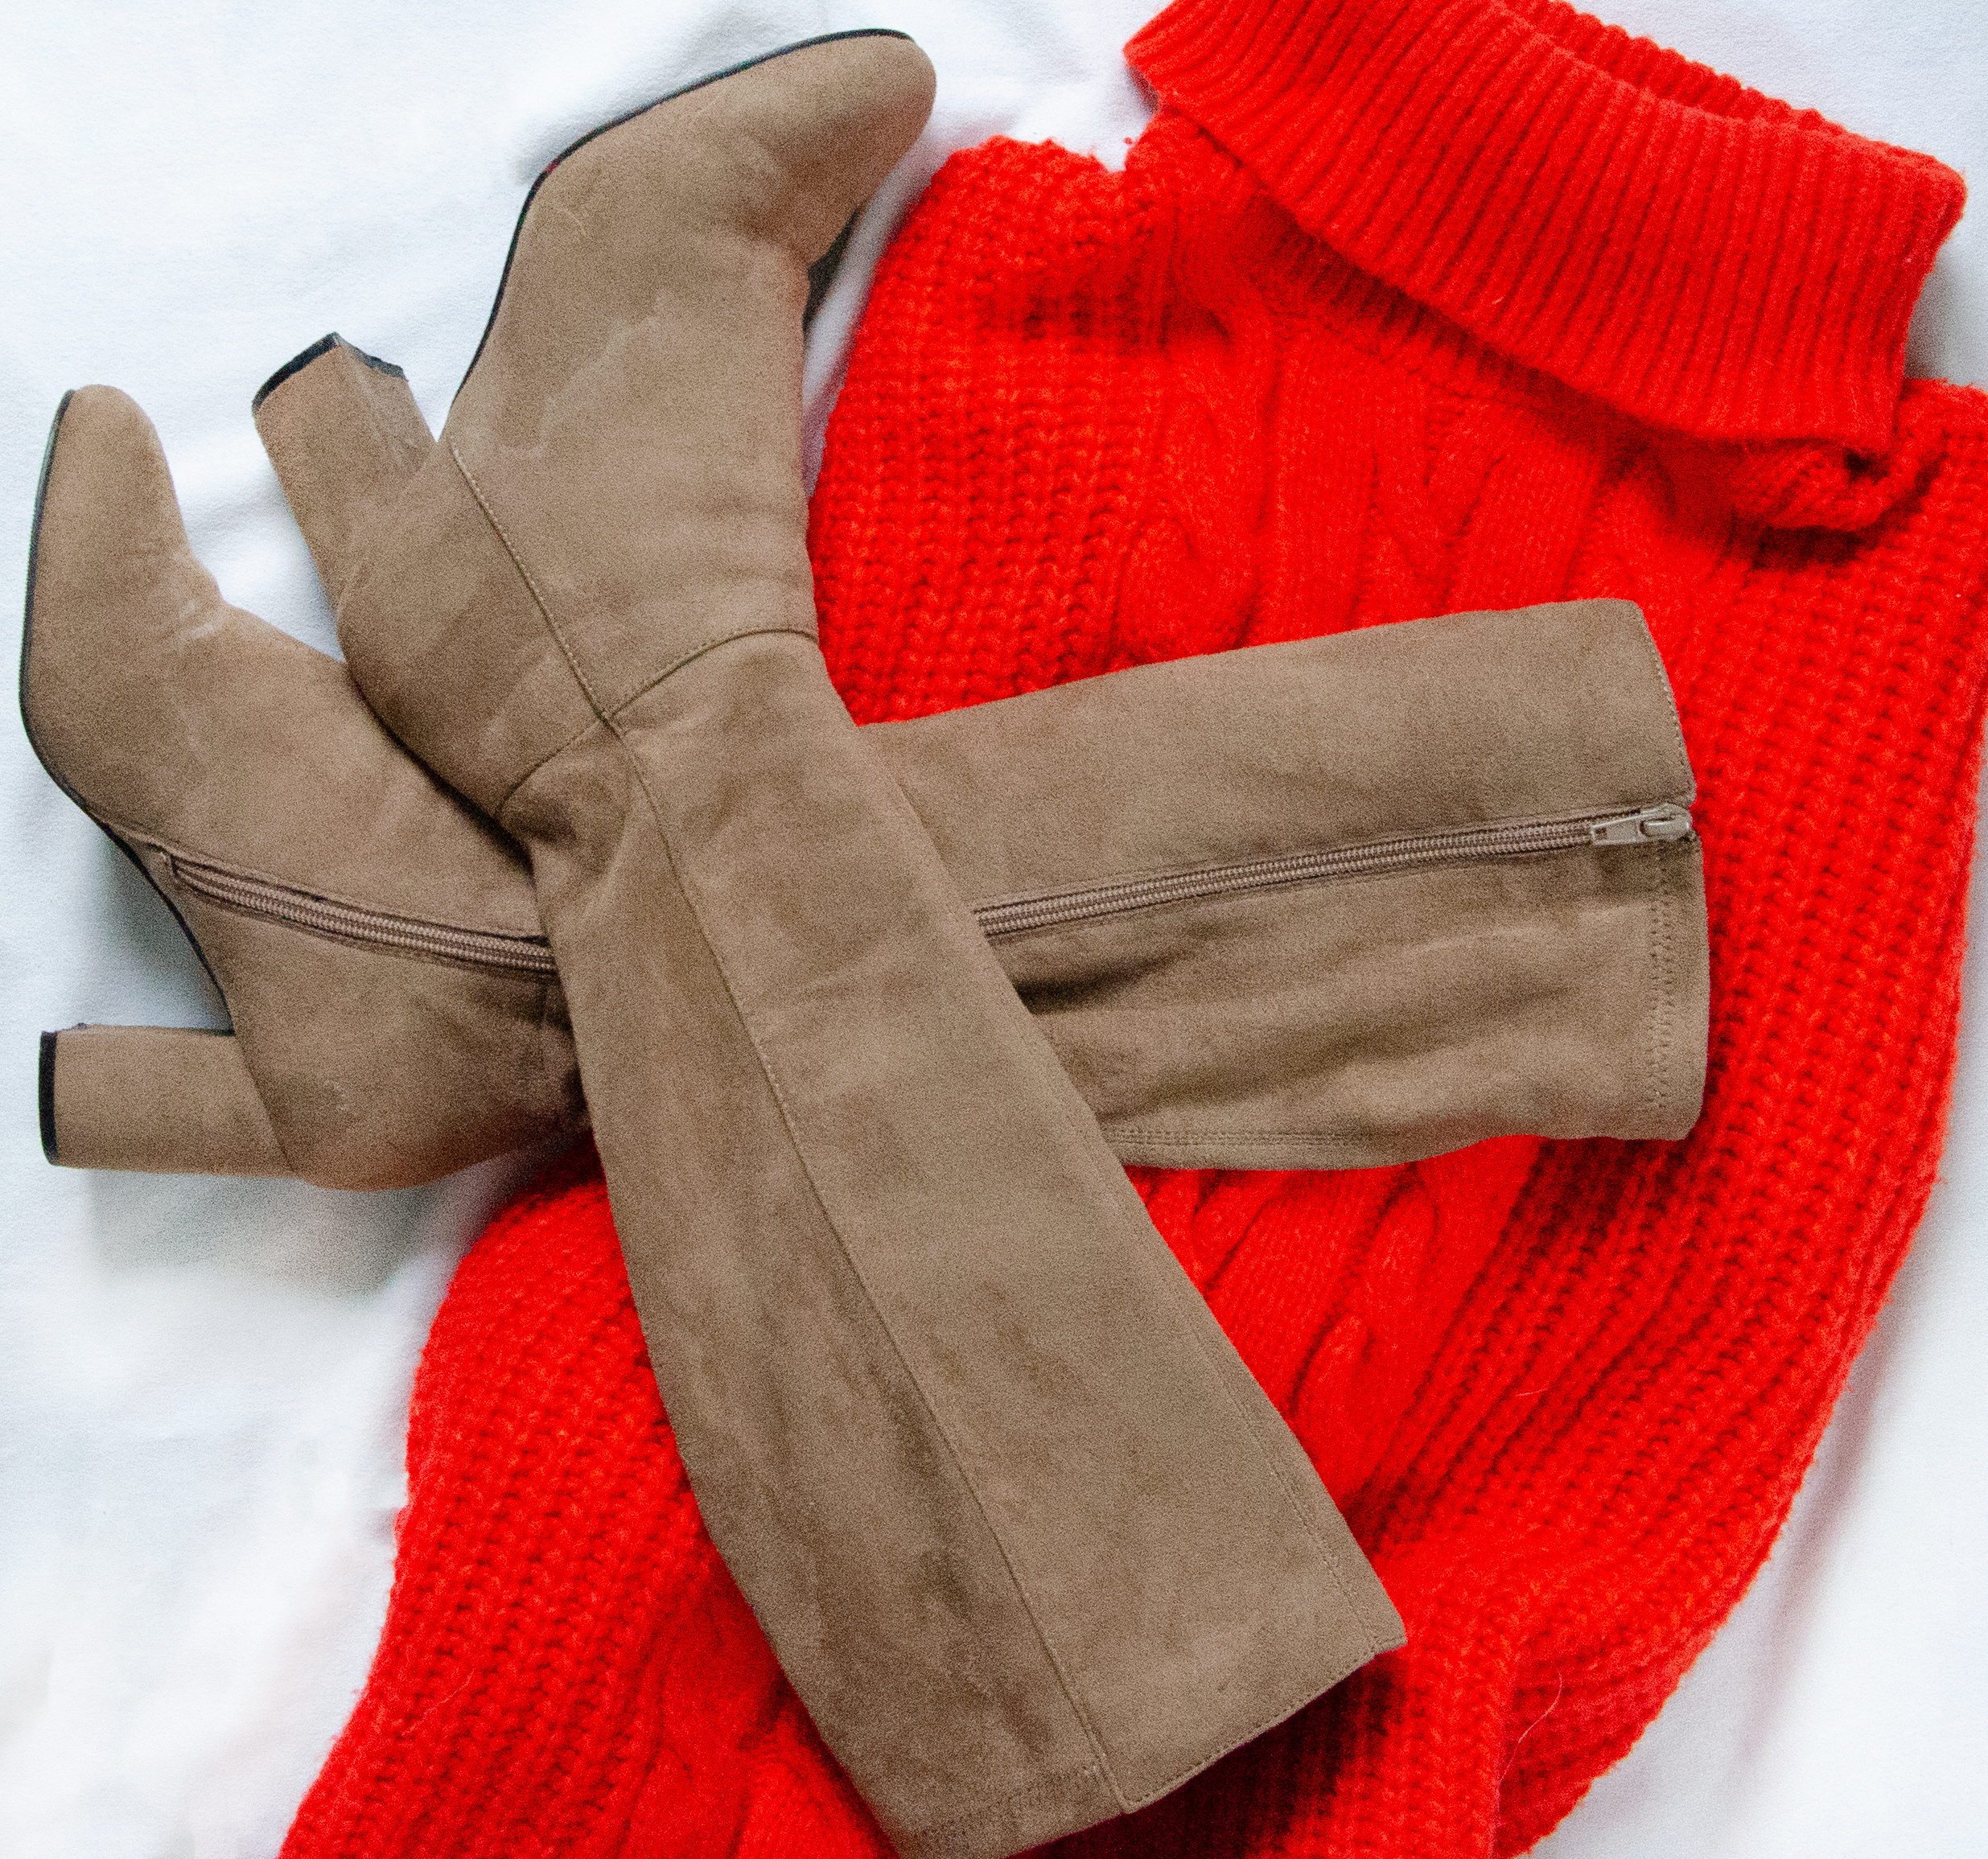 outfit 3 - Dress Sweater| Long suede boots (I already that this)TOTAL: 10.99 CAD